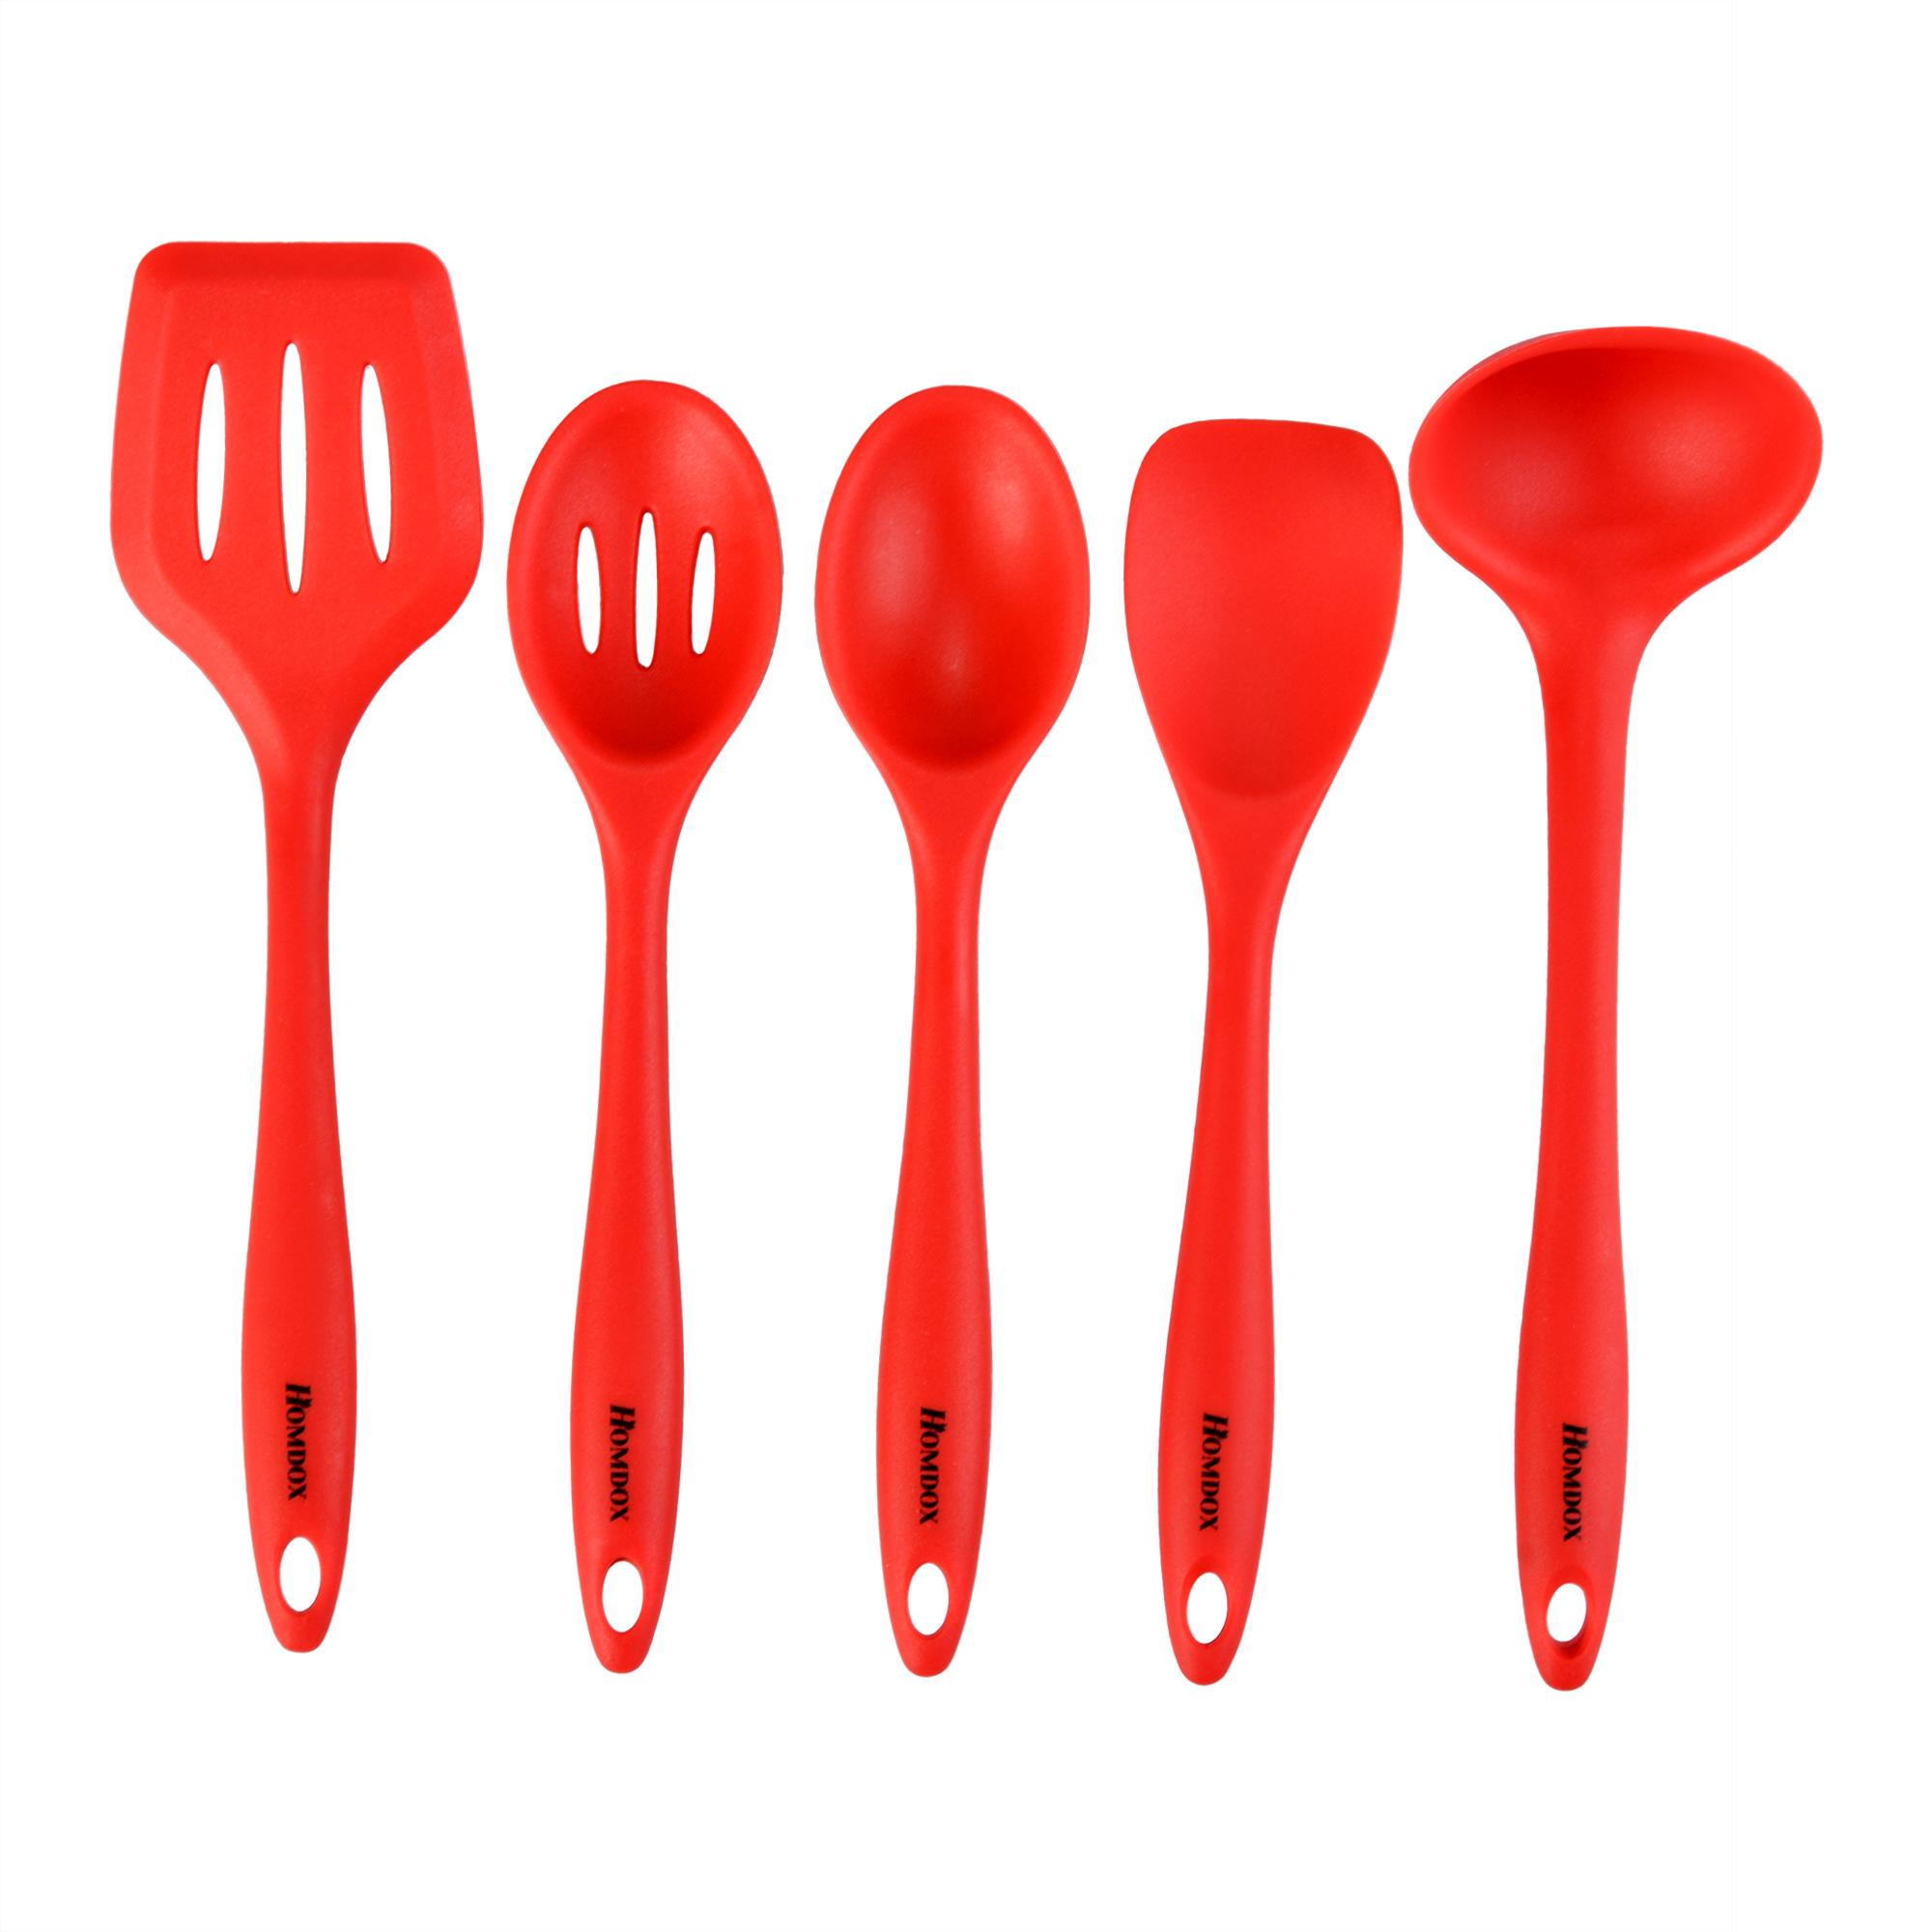 5 x Kitchen Utensil Set Silicone Spoon Baking Cooking Baking Tools Non-Stick